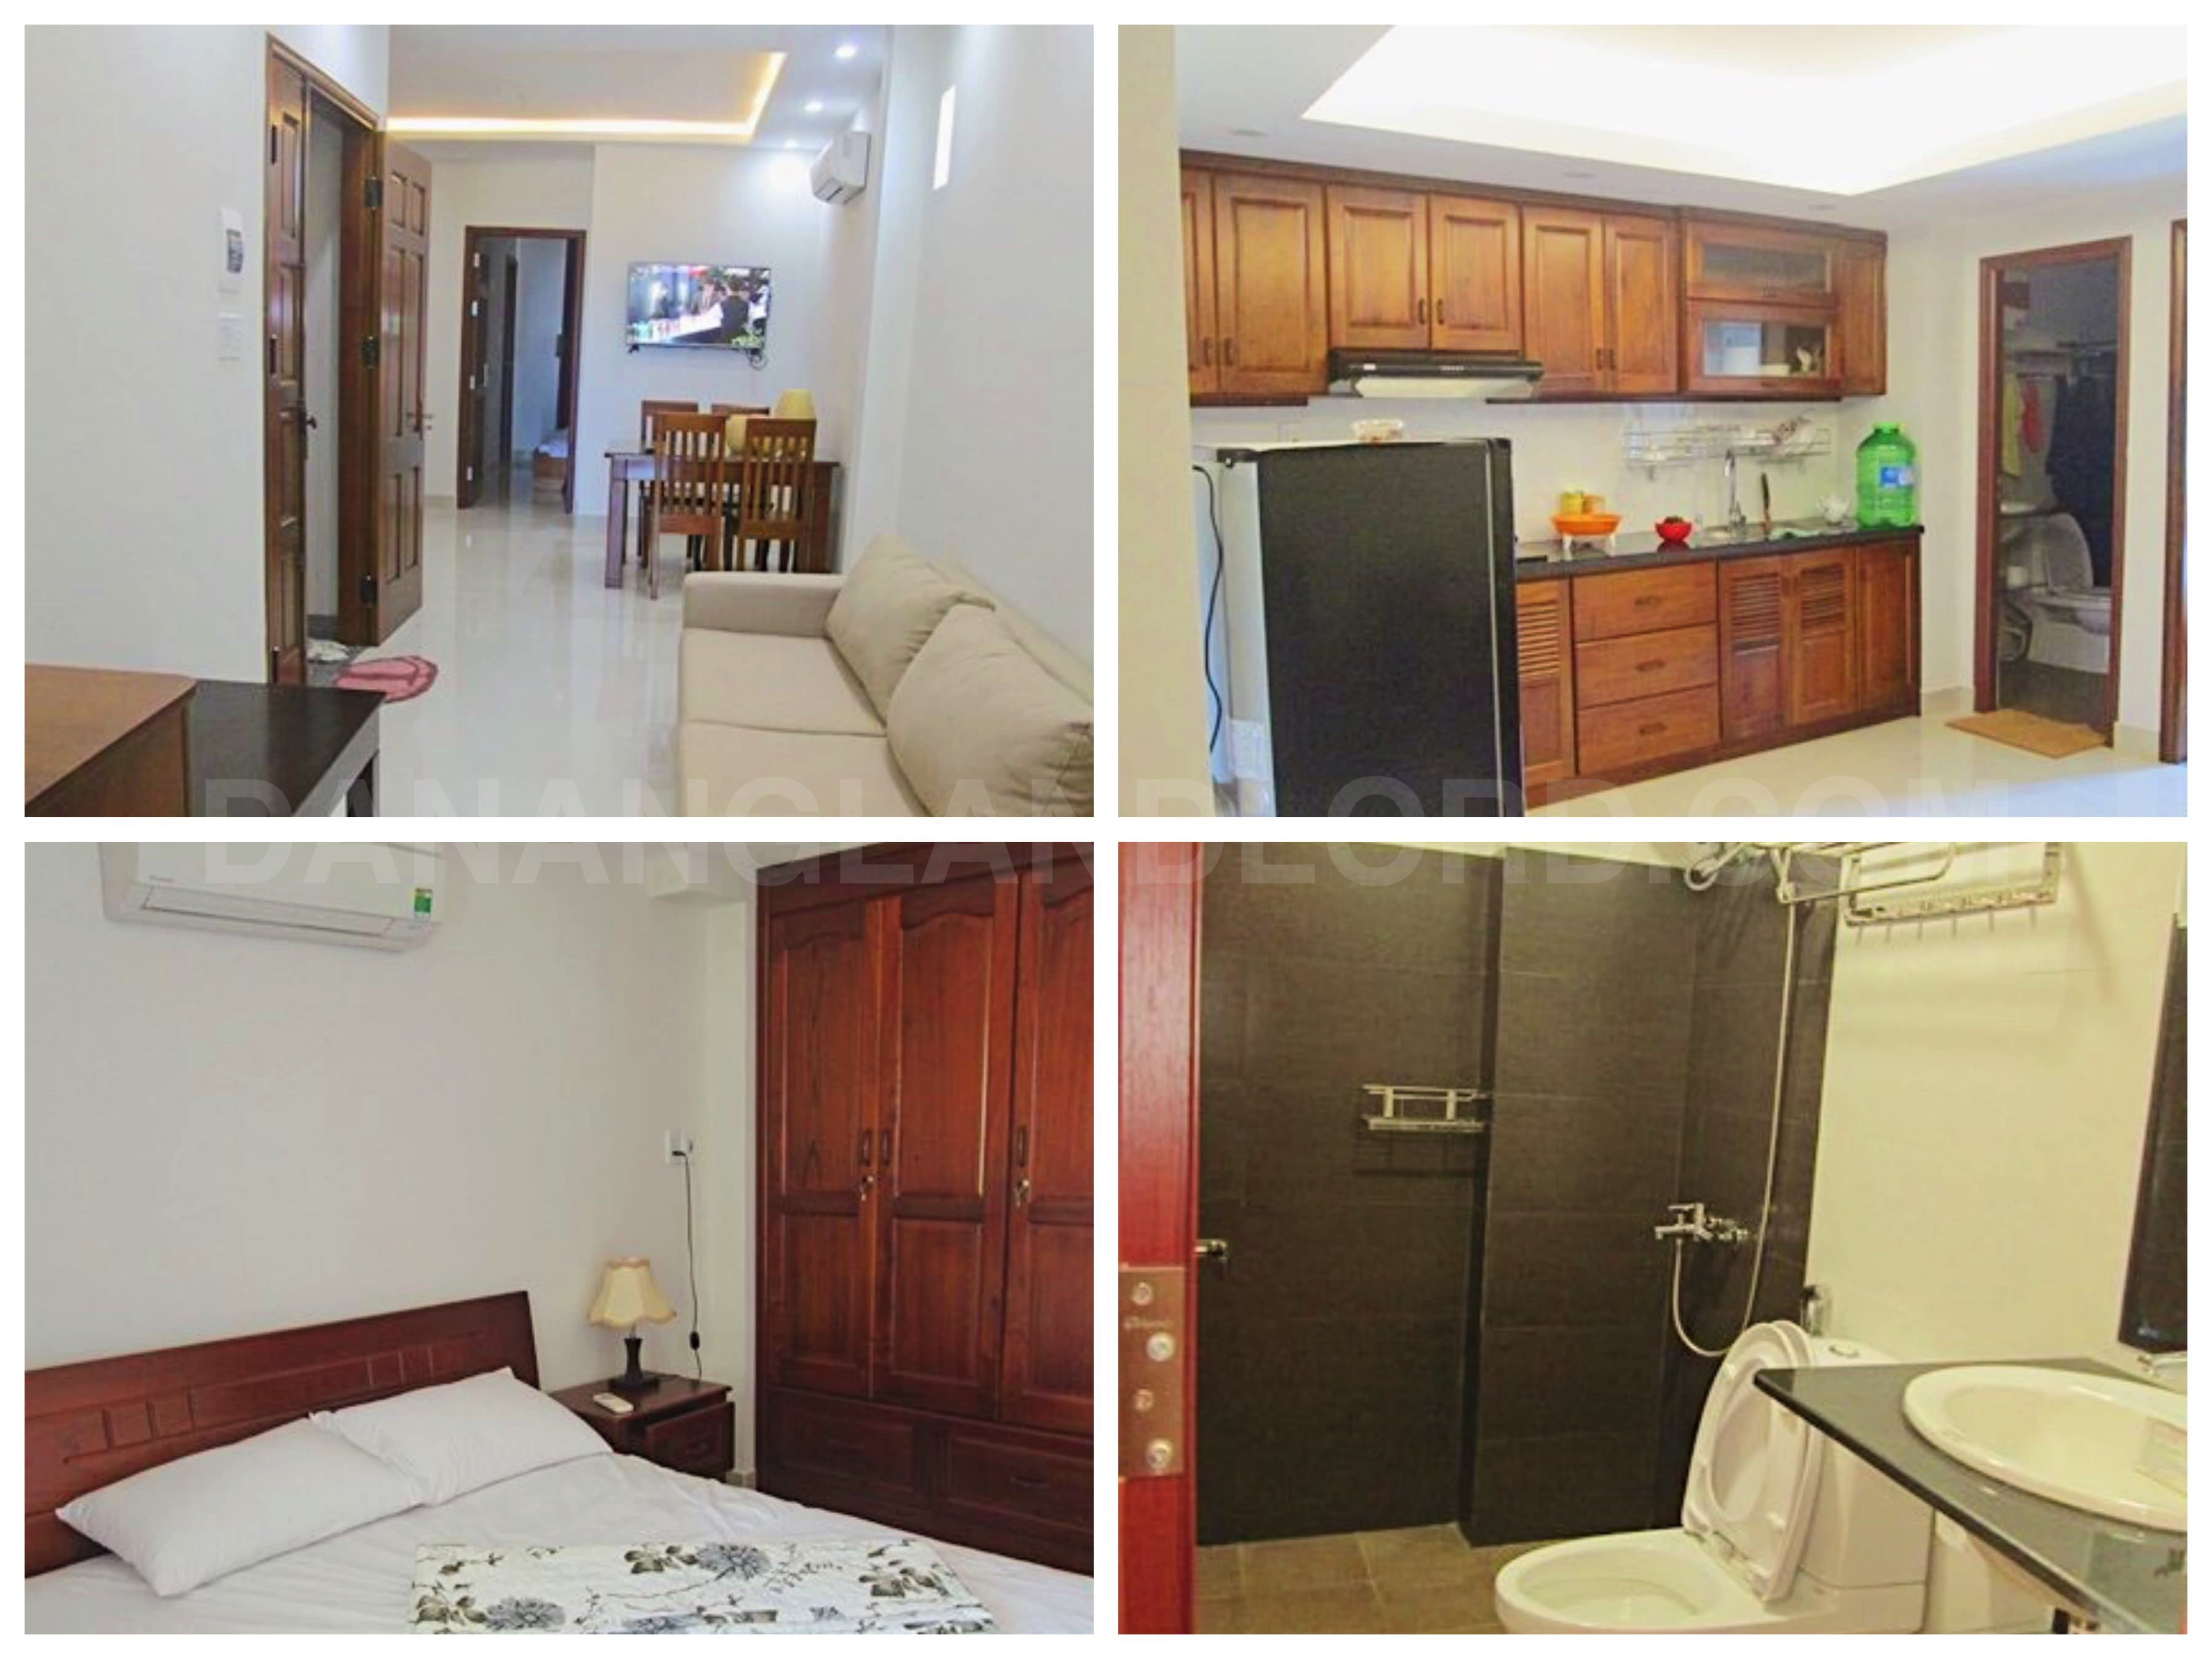 Apartment for rent very close to My Khe beach